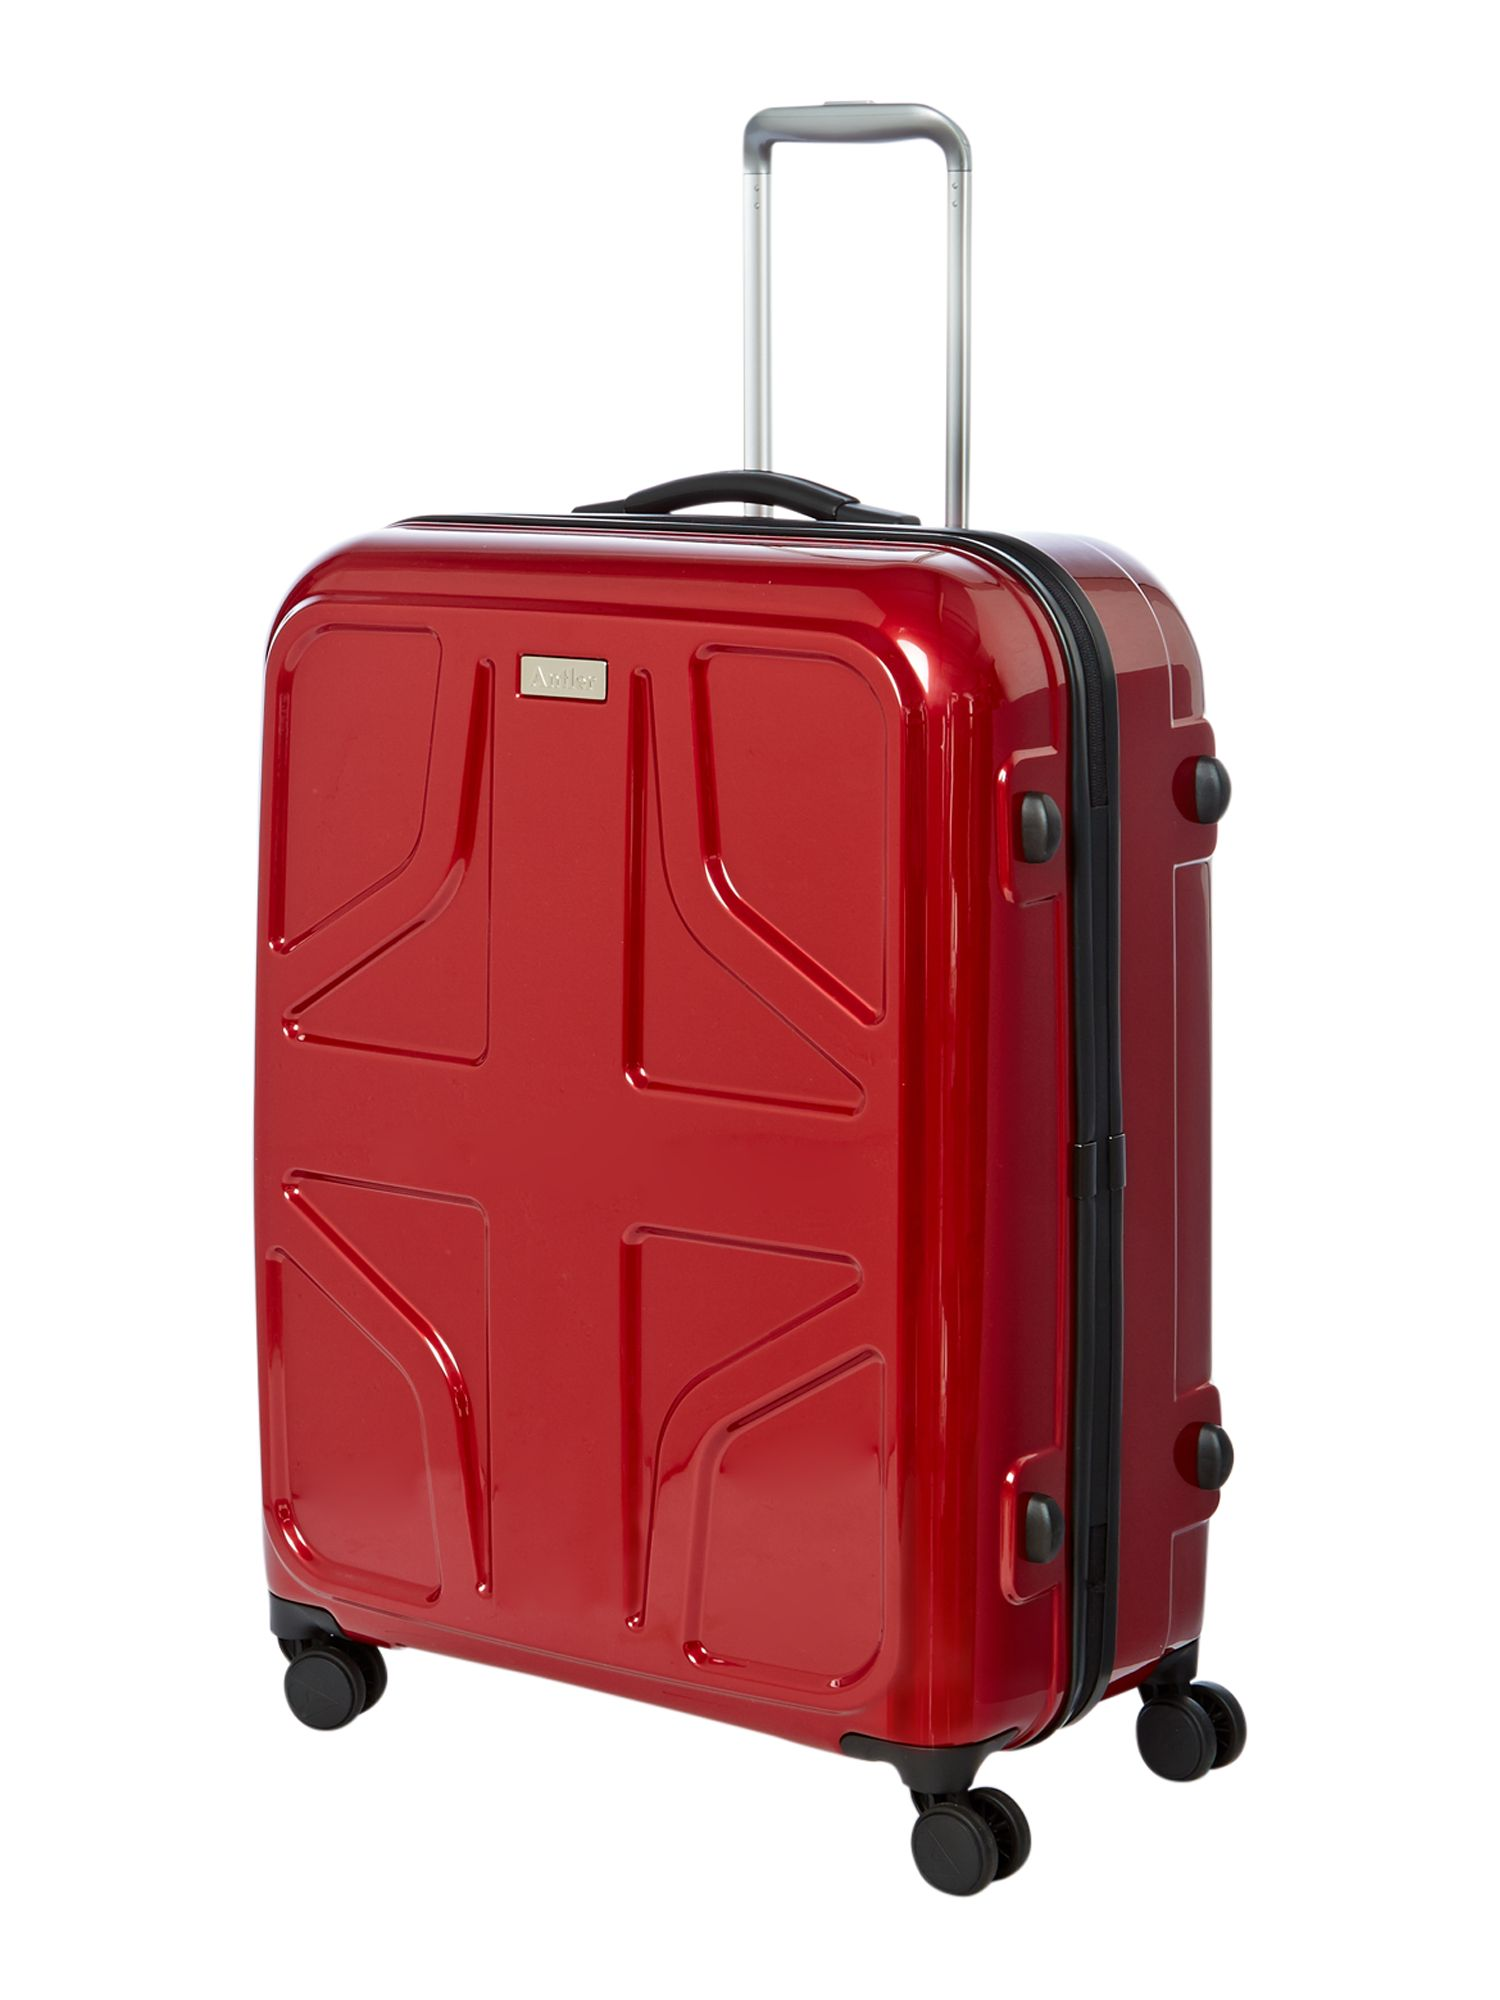 Sterling large red suitcase